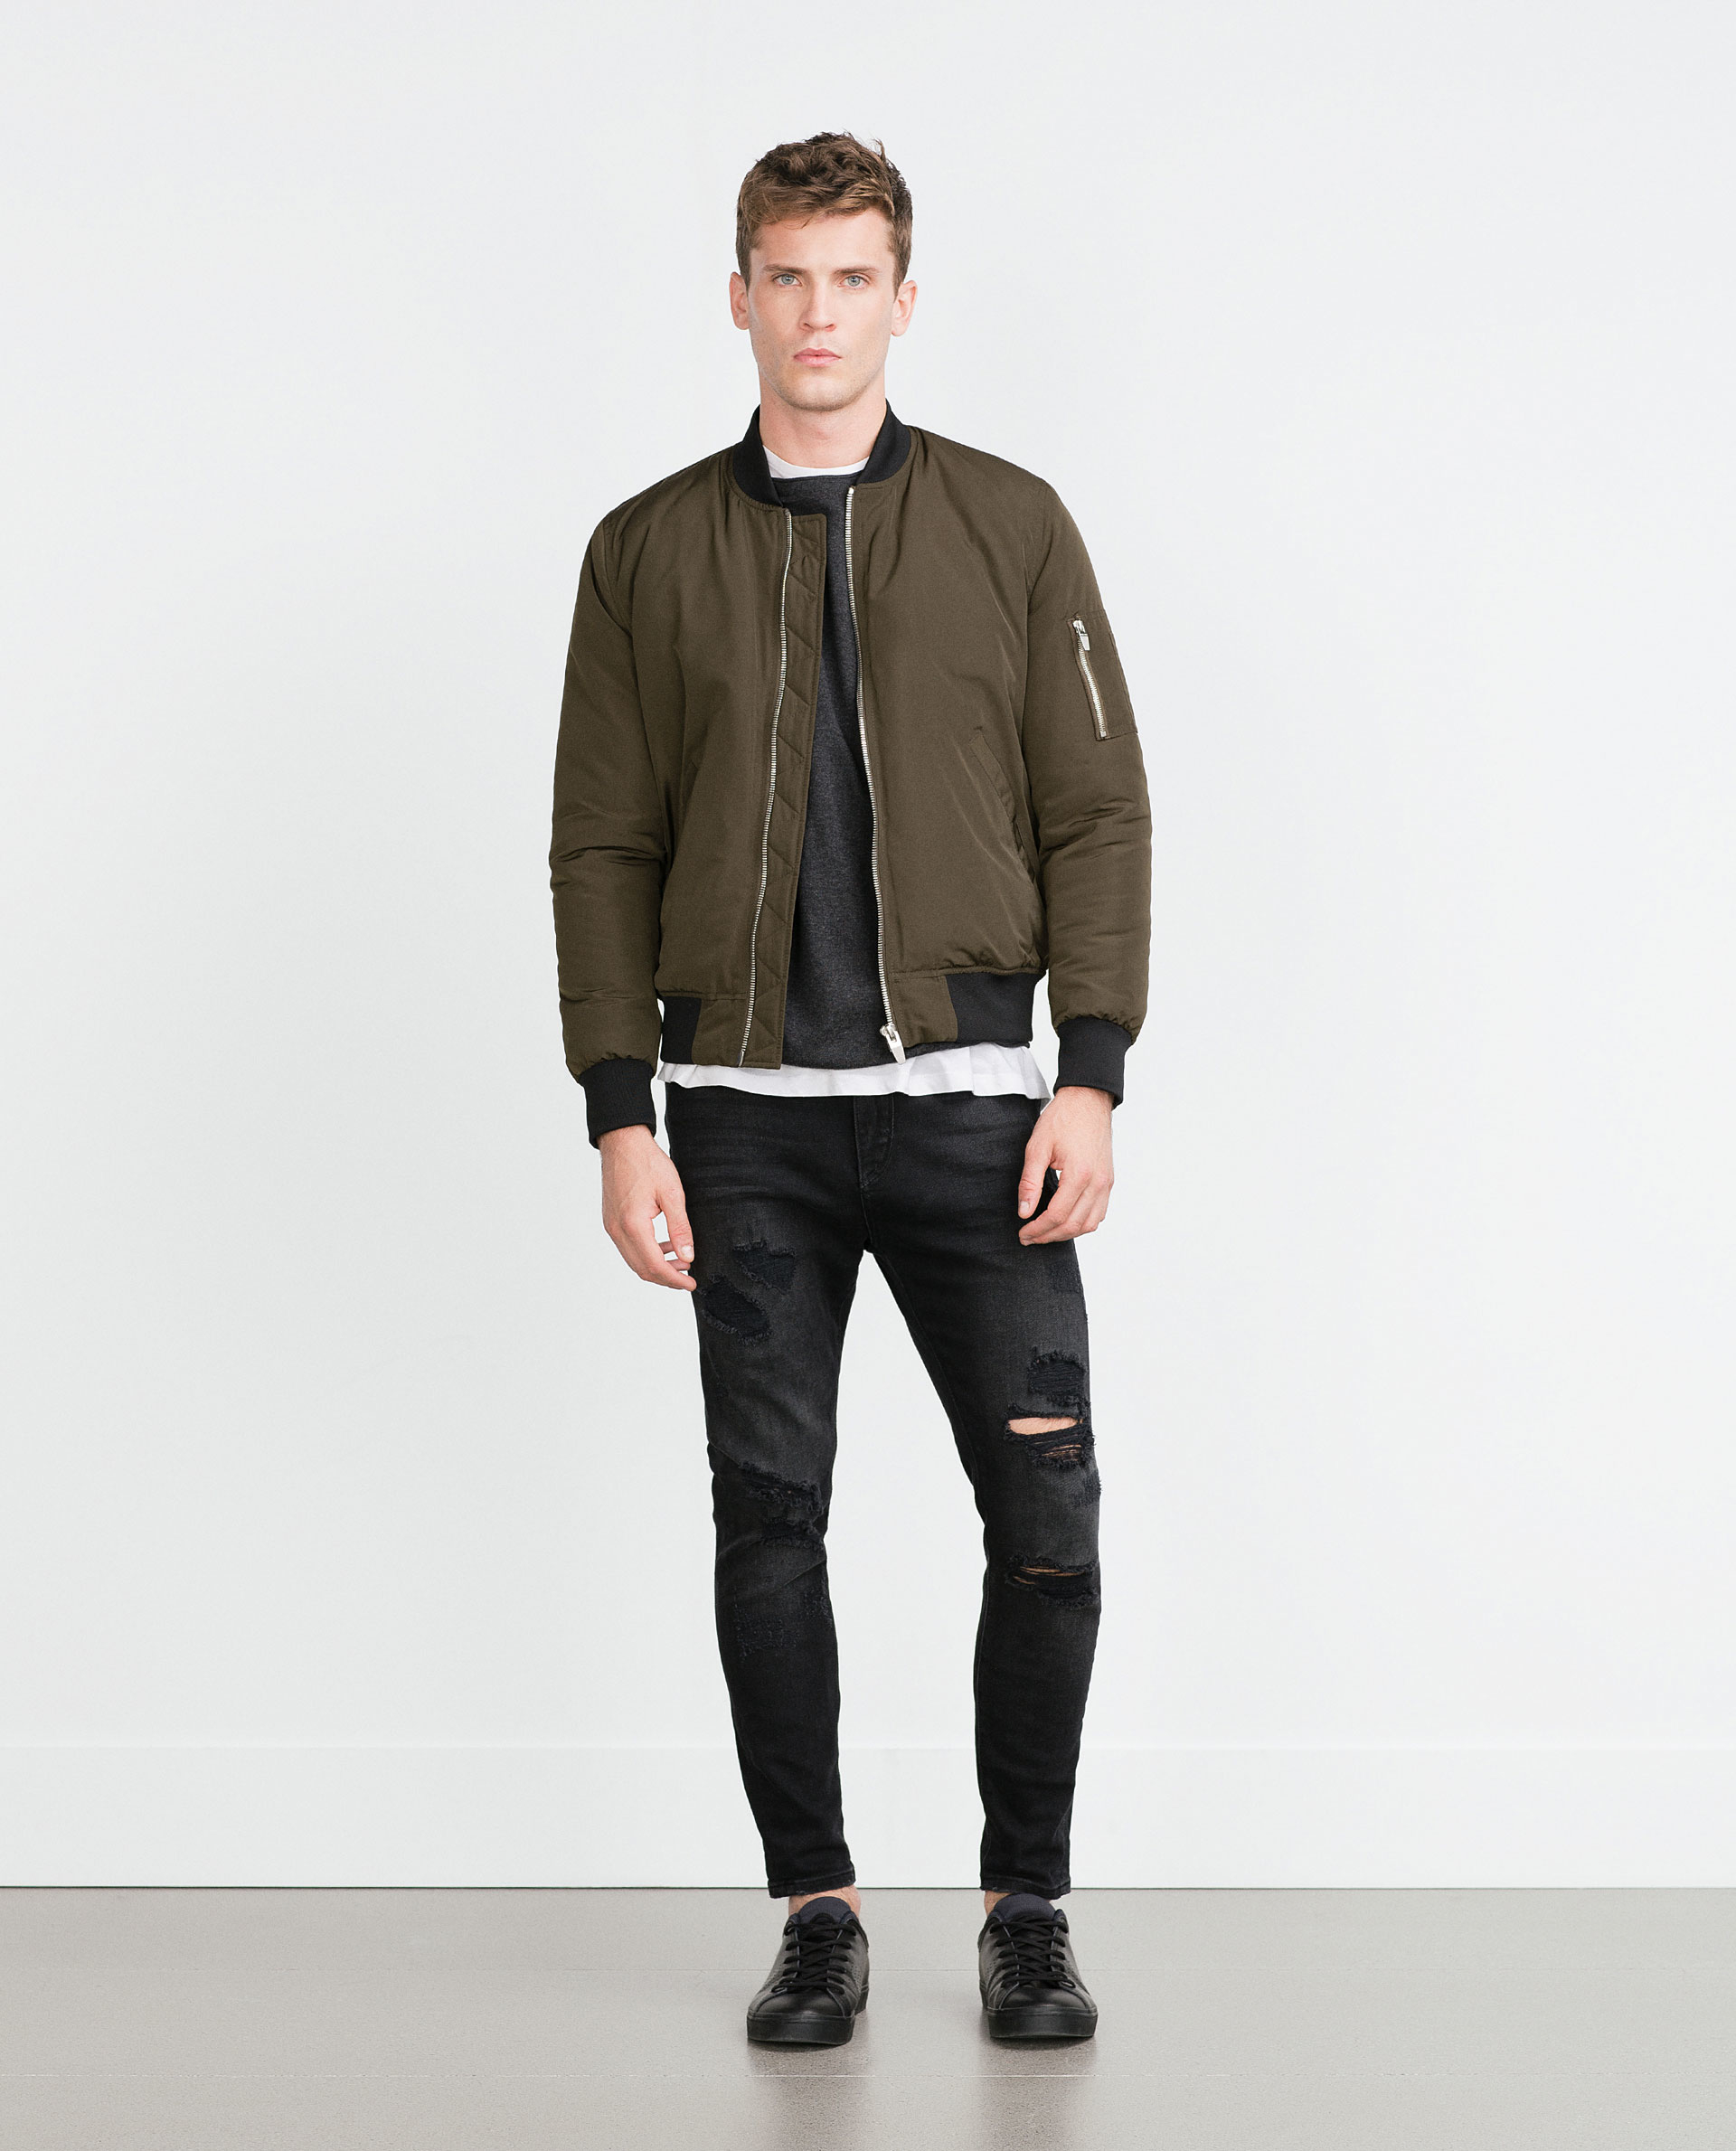 zara bomber jacket in natural for men lyst. Black Bedroom Furniture Sets. Home Design Ideas